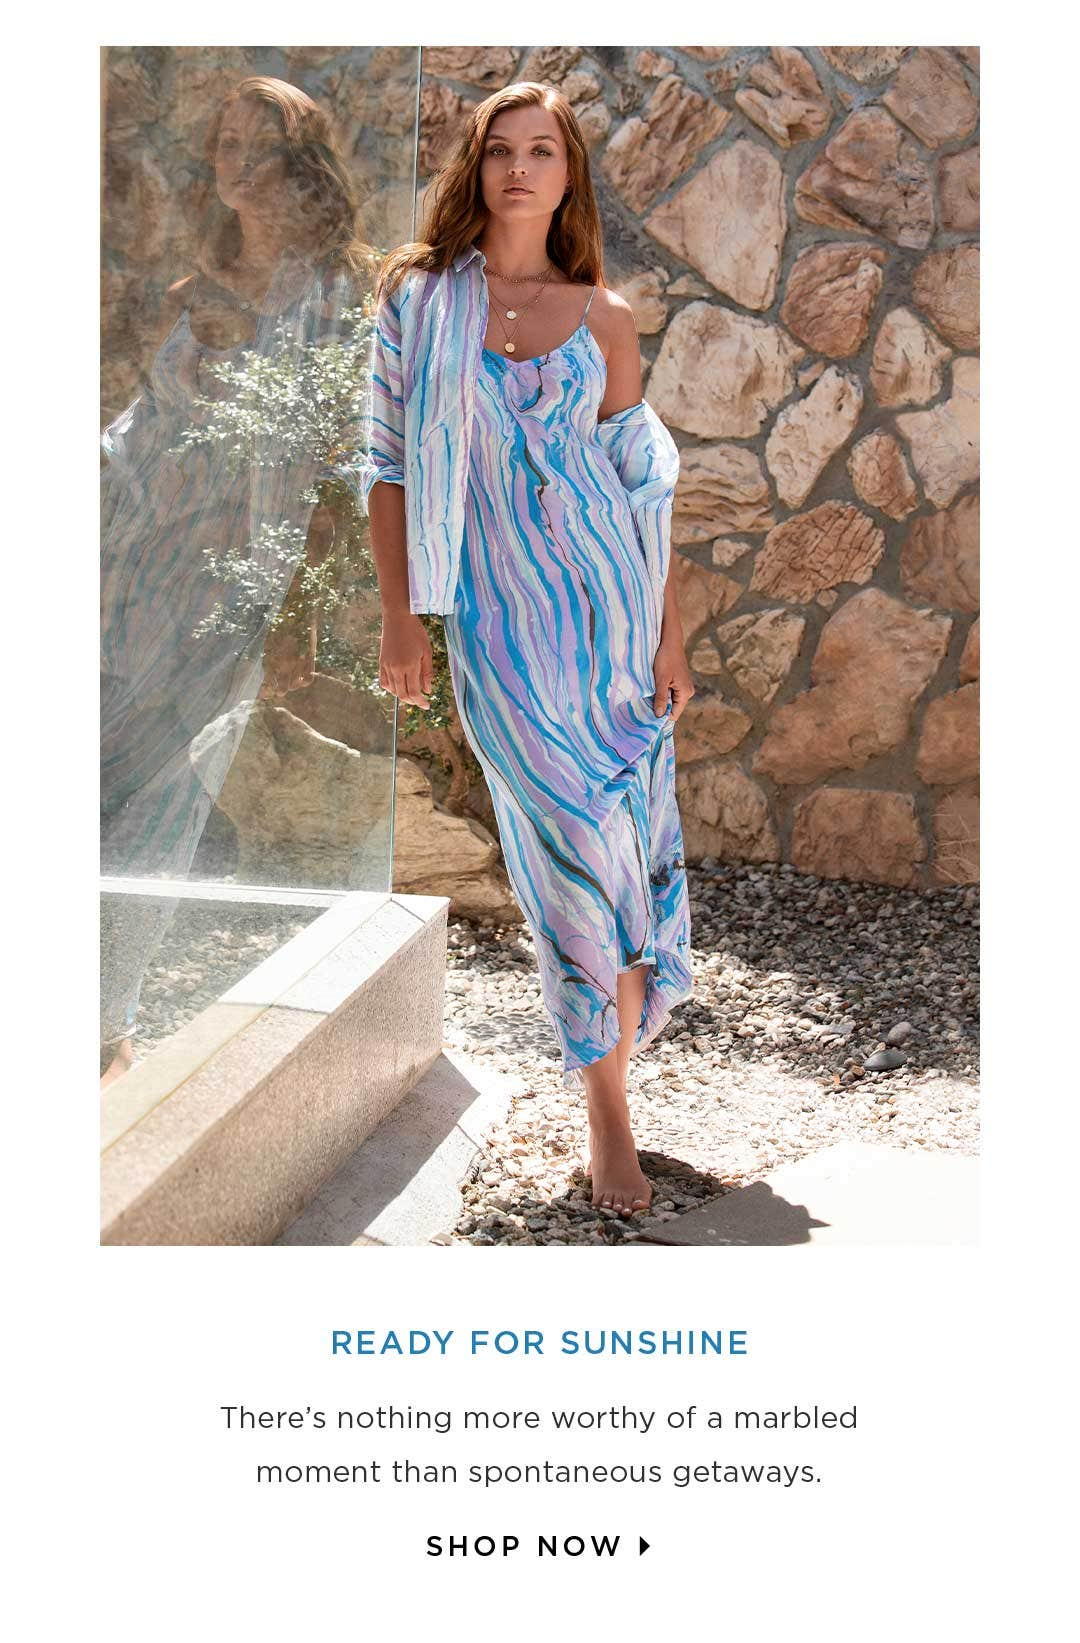 Ready for Sunshine - There's nothing more worthy of a marbled moment than spontaneous getaways. Shop now